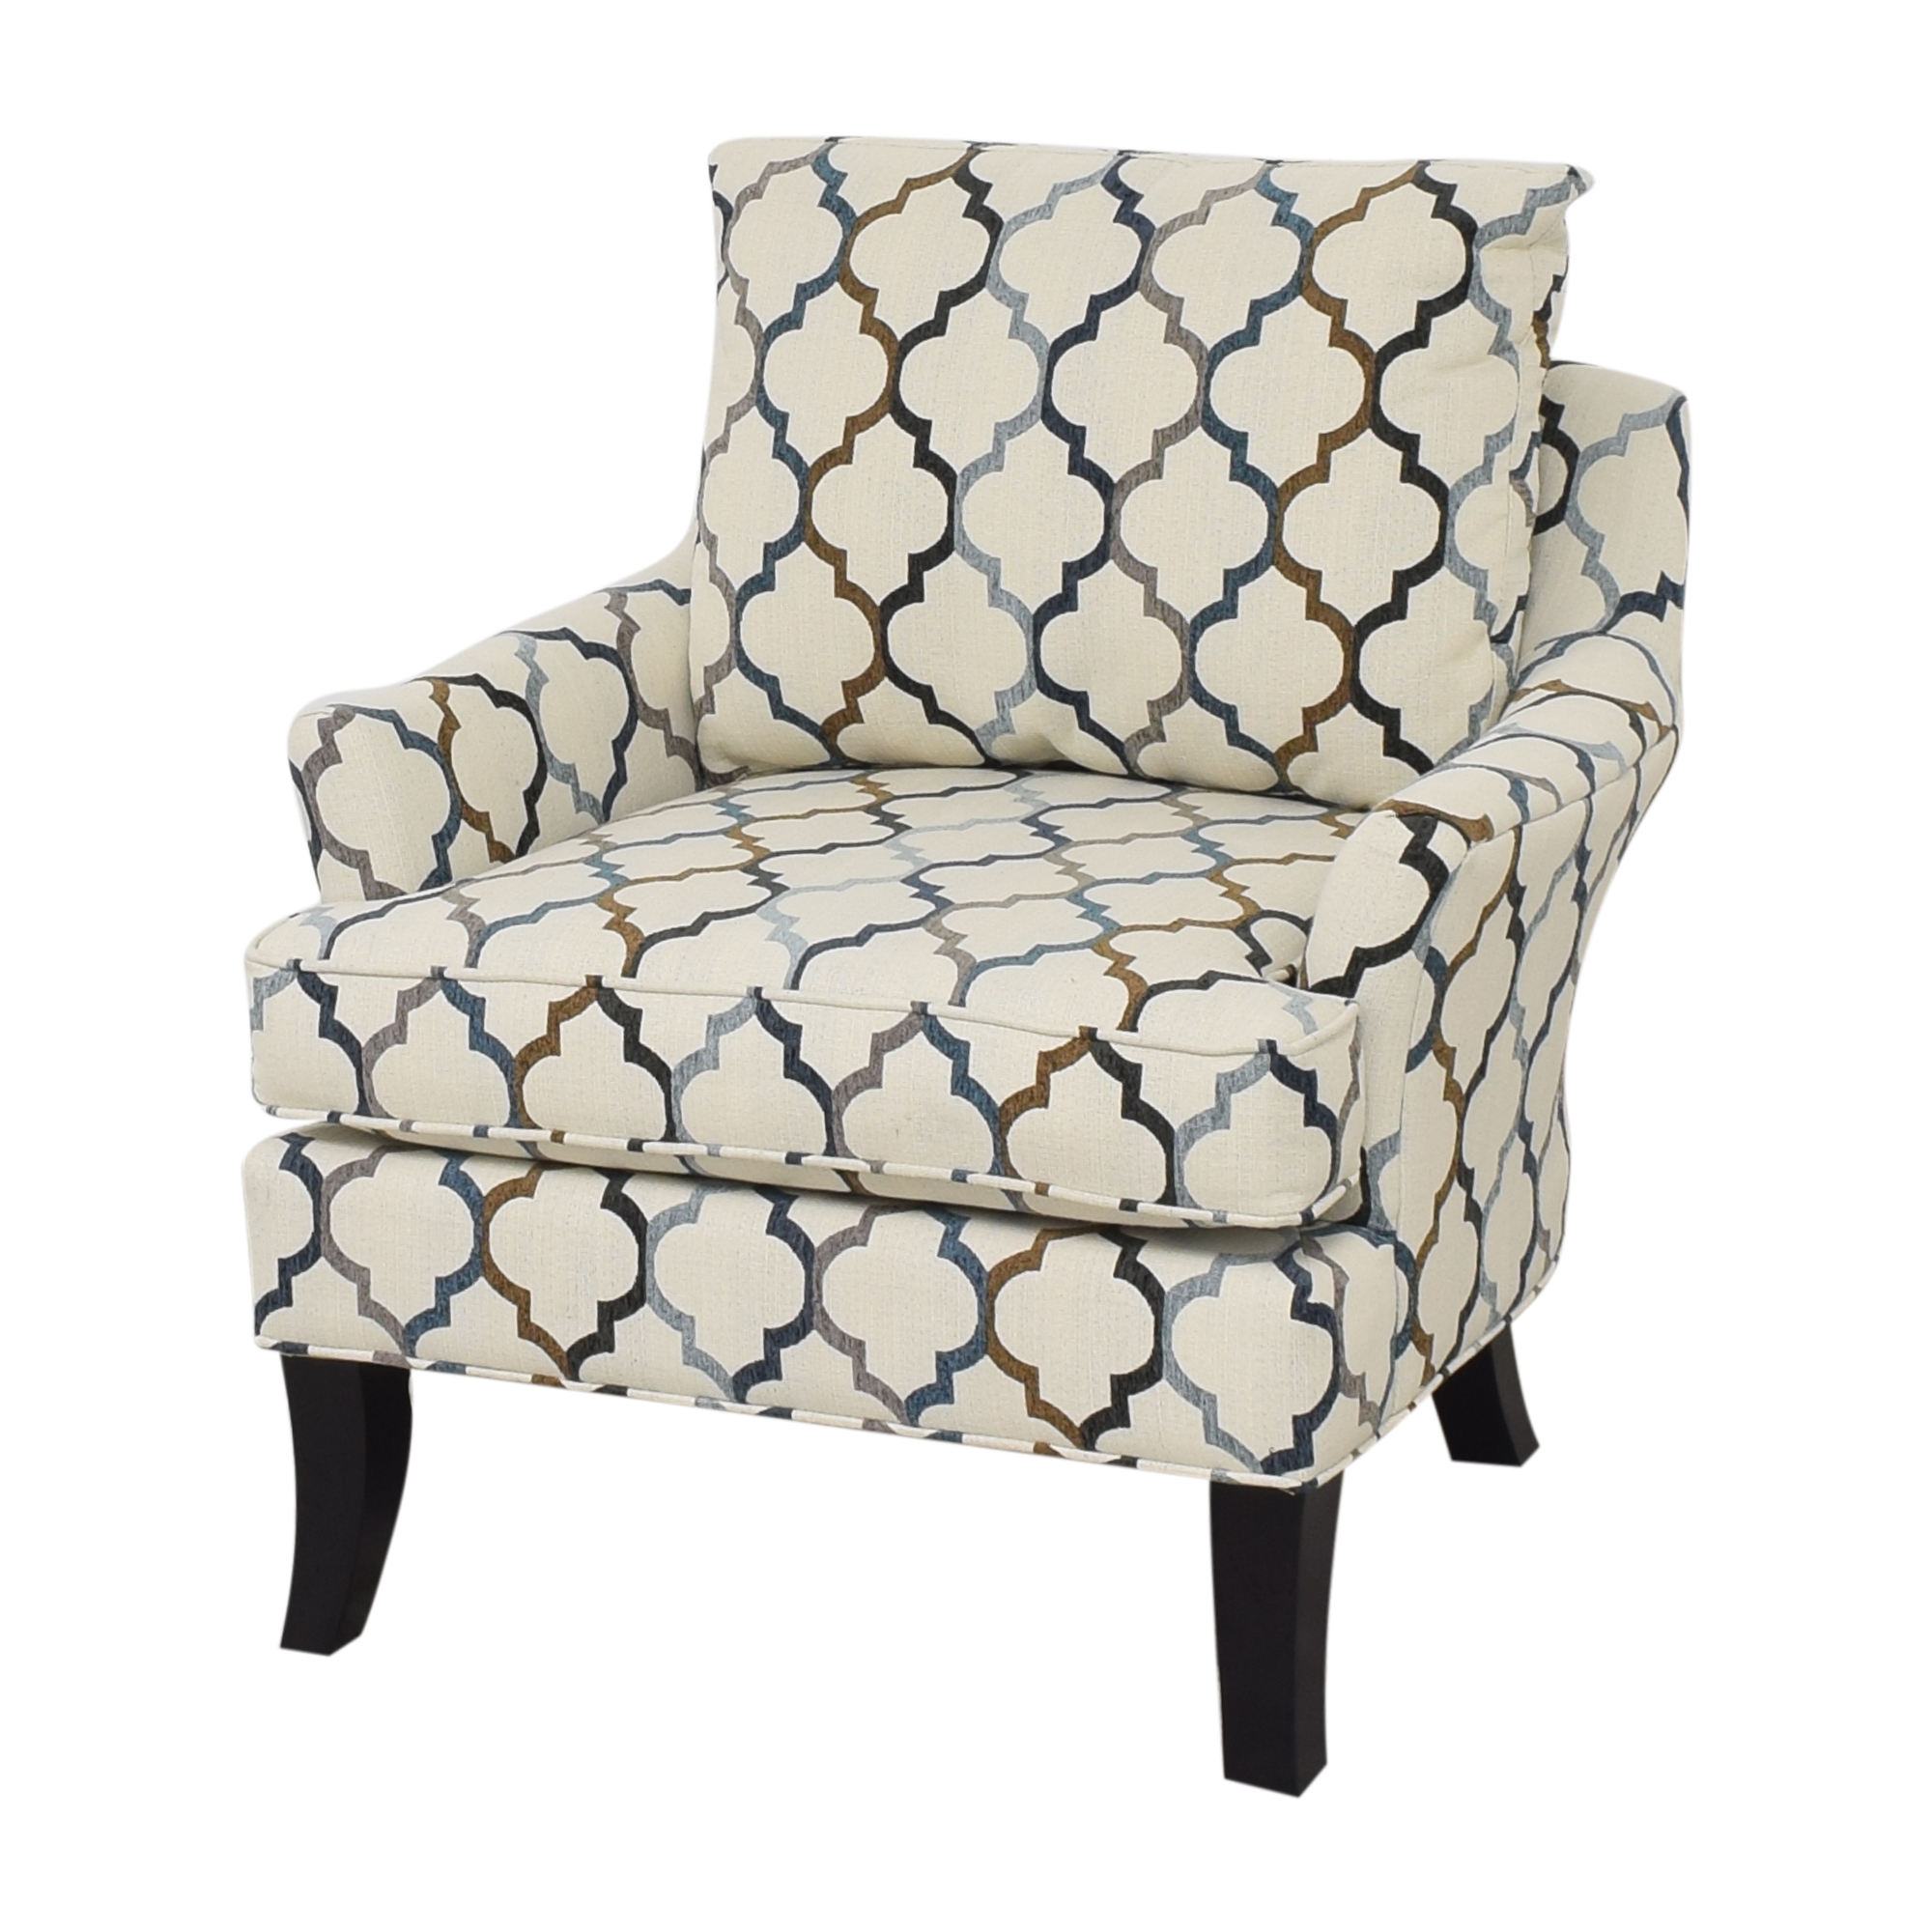 Raymour & Flanigan Raymour & Flanigan Quatrefoil Accent Chair discount